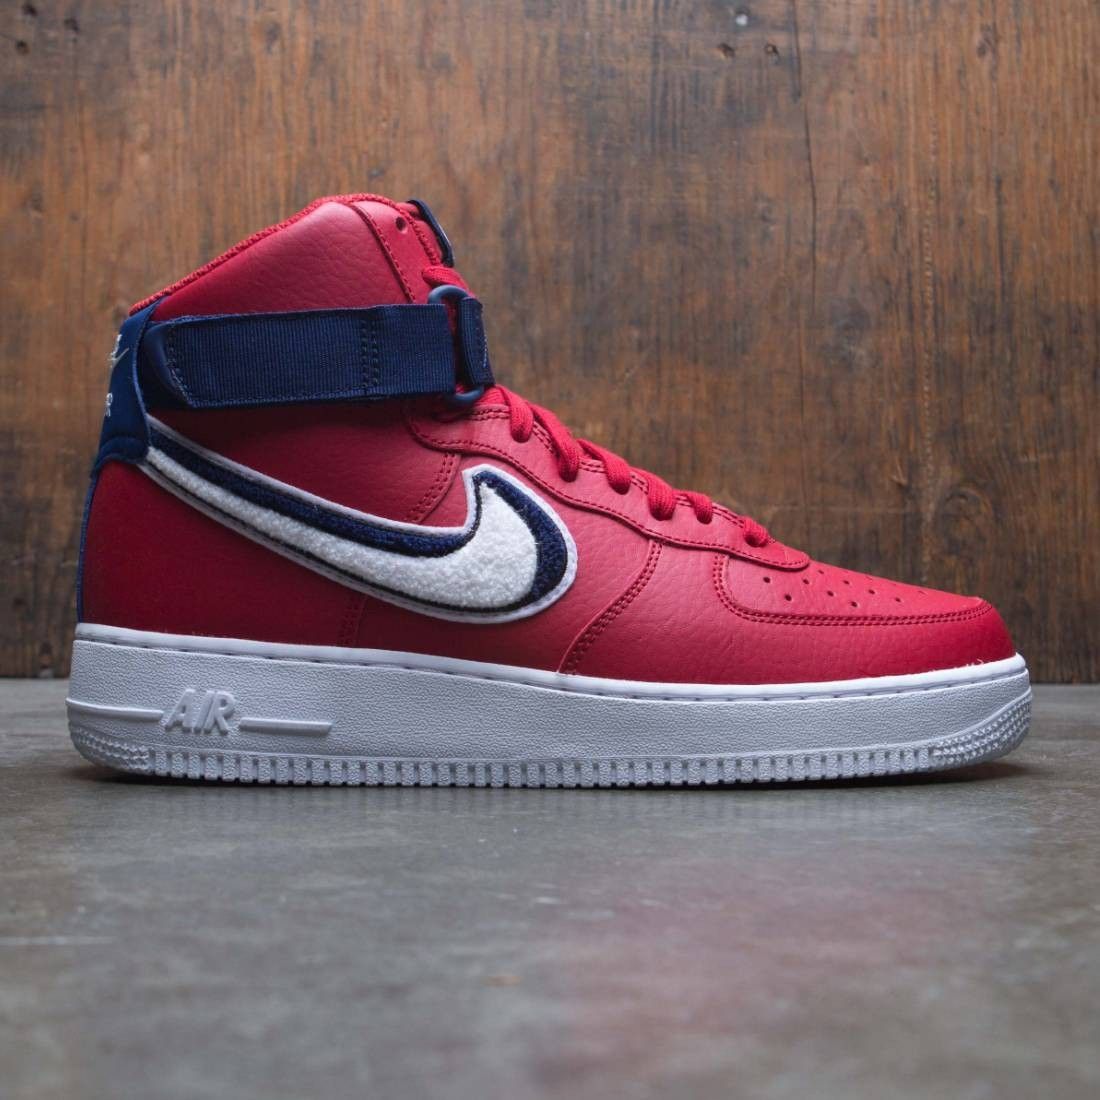 quality design dcc0a 9995d nike men air force 1 high 07 lv8 gym red white blue void white